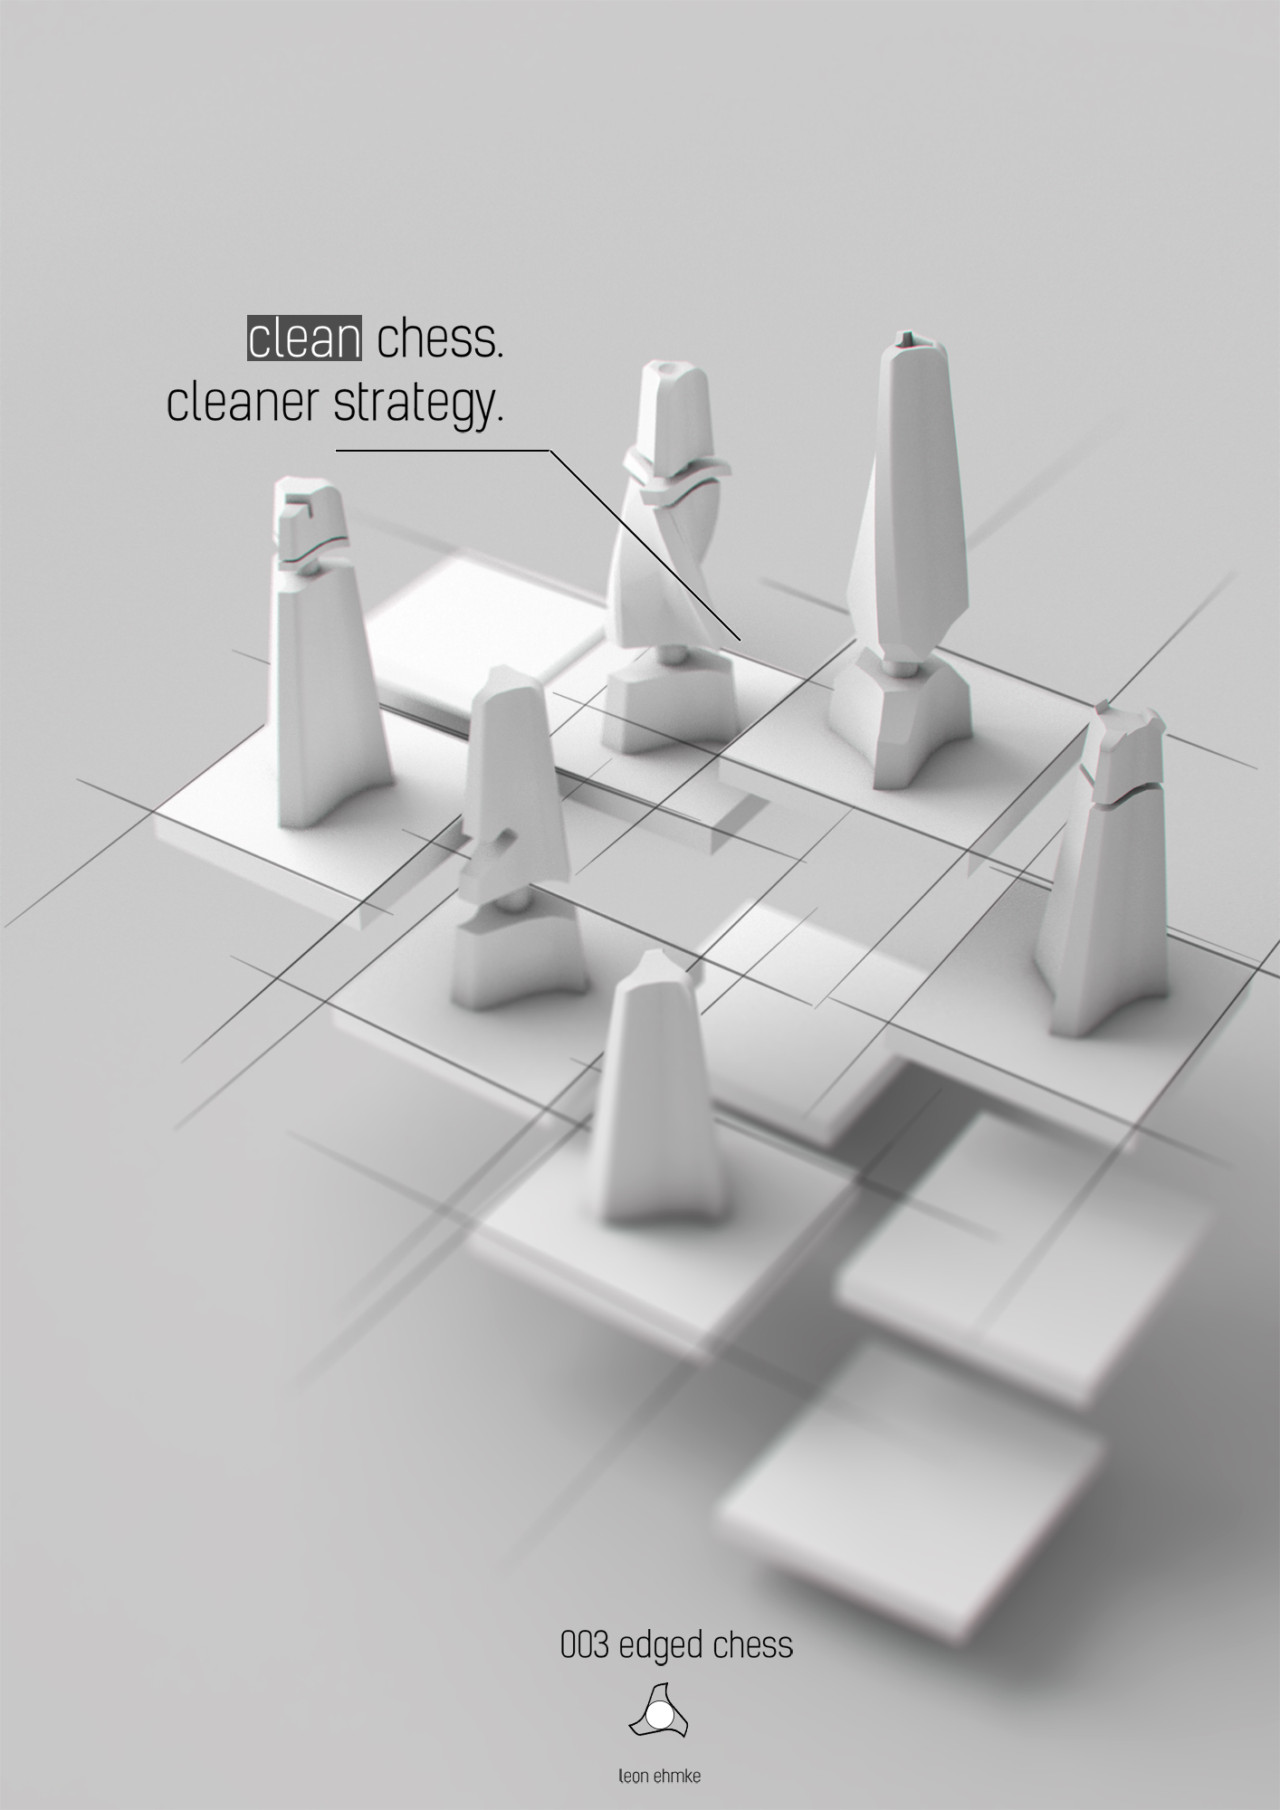 3D printed chess set custom chess pieces parametric design student discount student grant 3D printing education games tabletop games game pieces